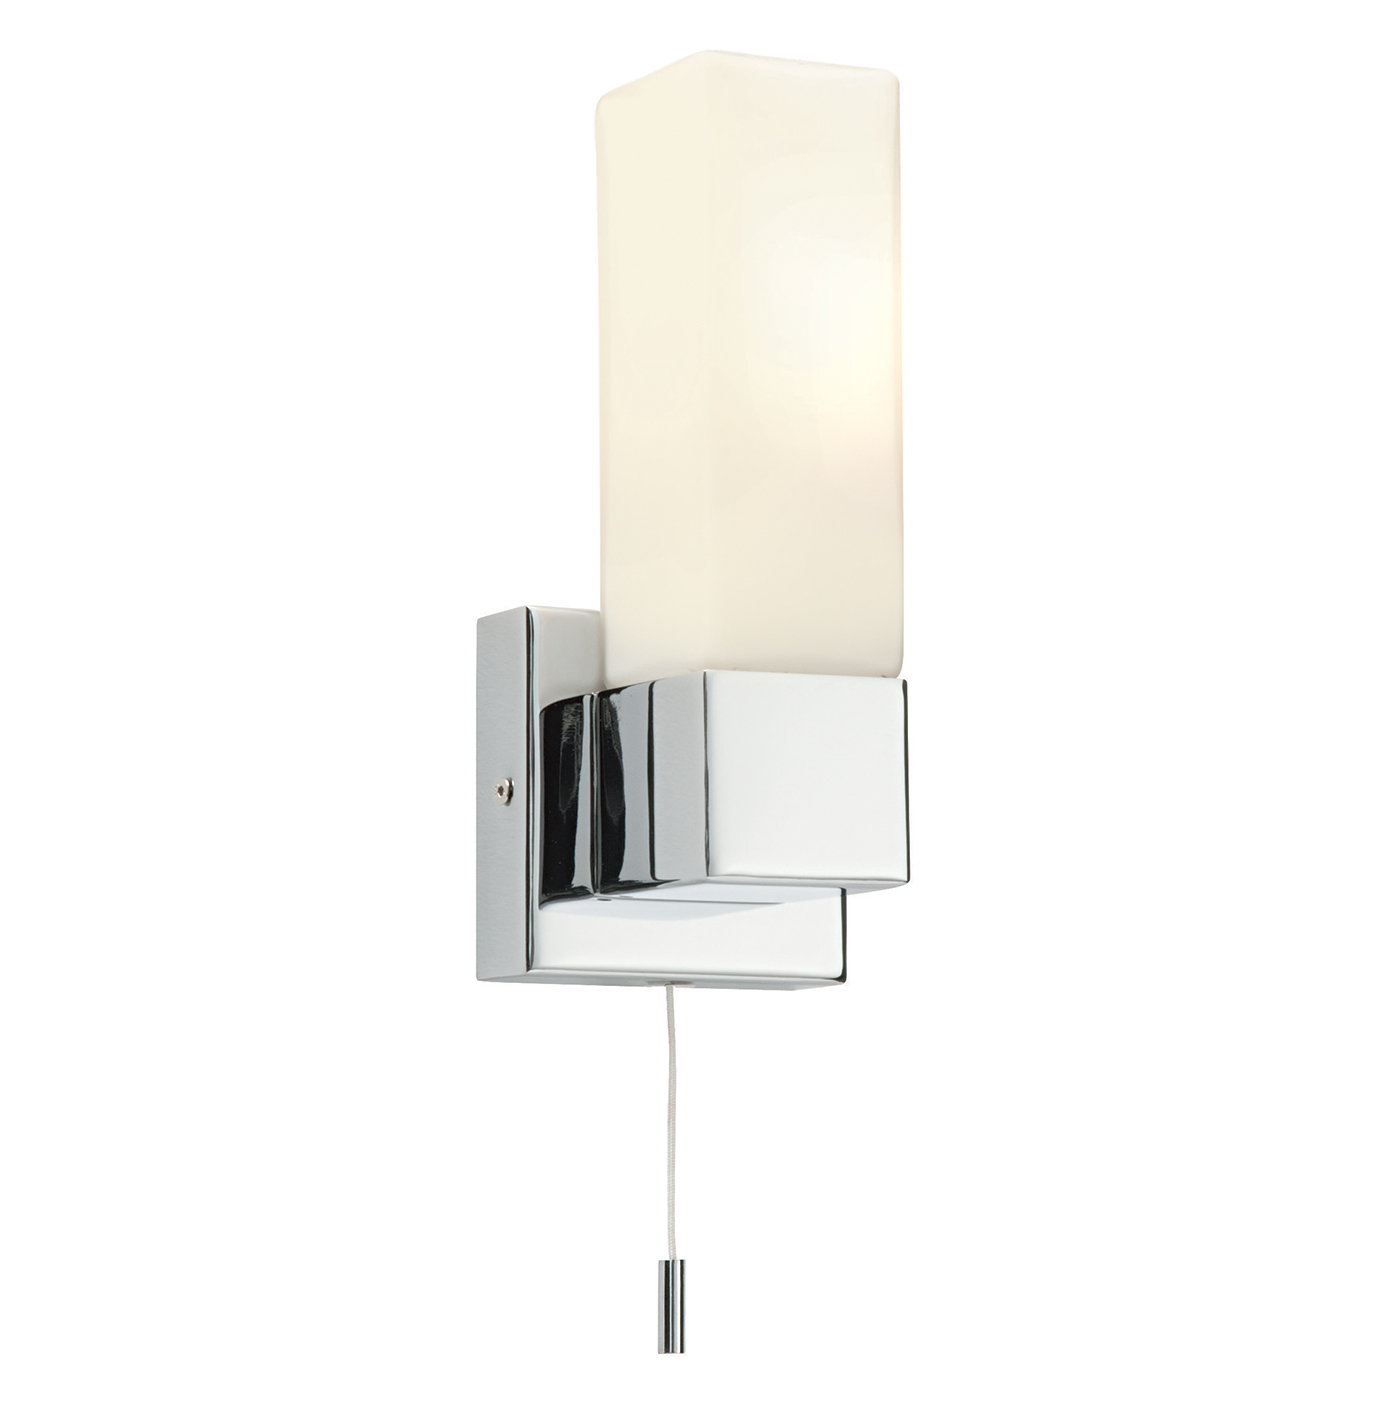 Endon Square 1lt bathroom wall light IP44 40W Chrome & opal glass pull cord Thumbnail 1